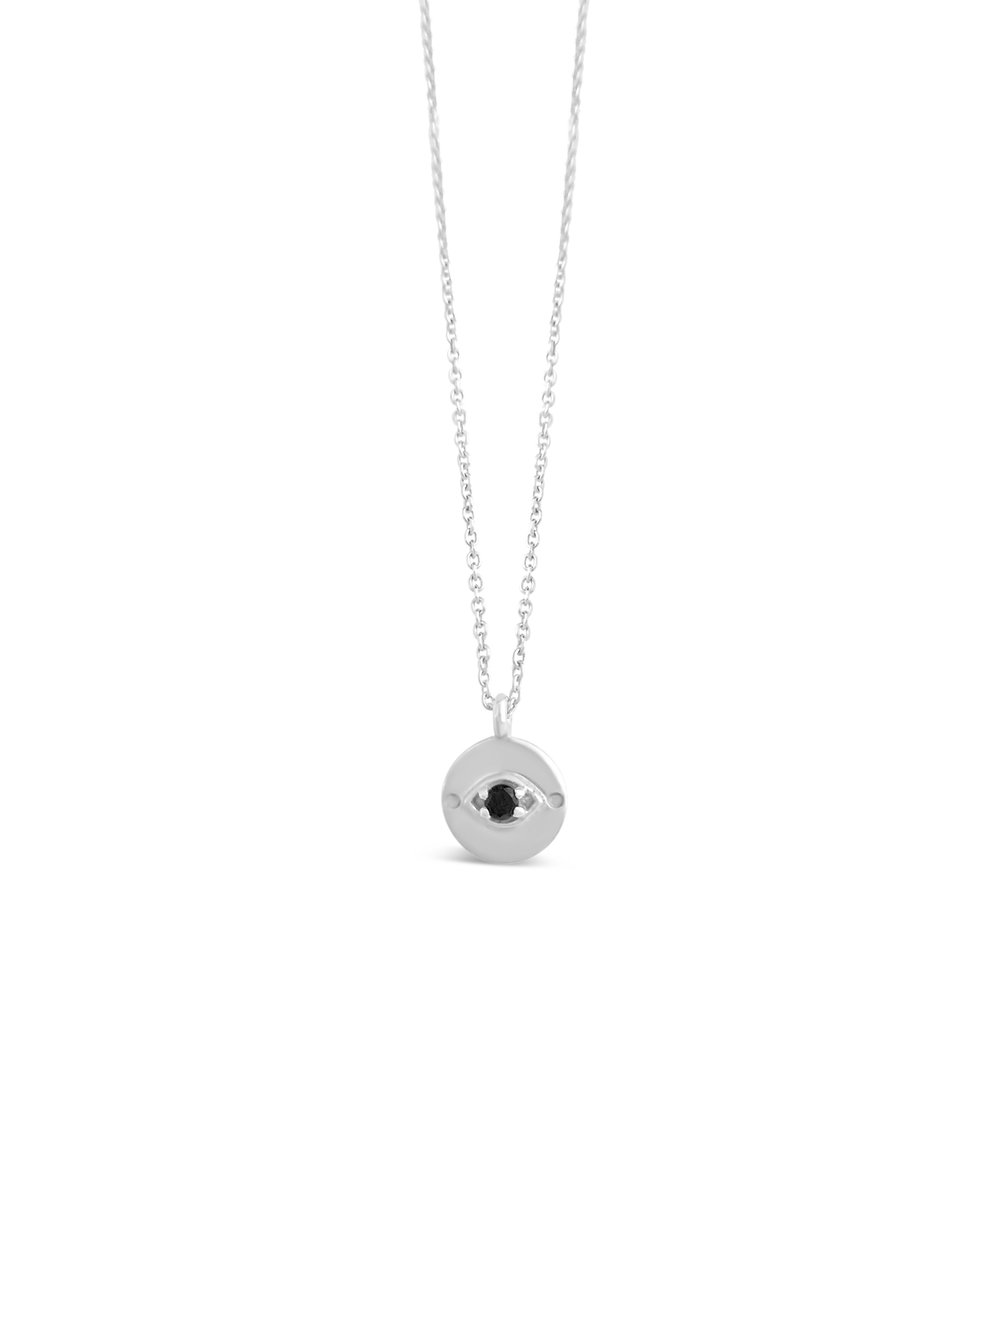 necklace sterling silver eye evil olizz